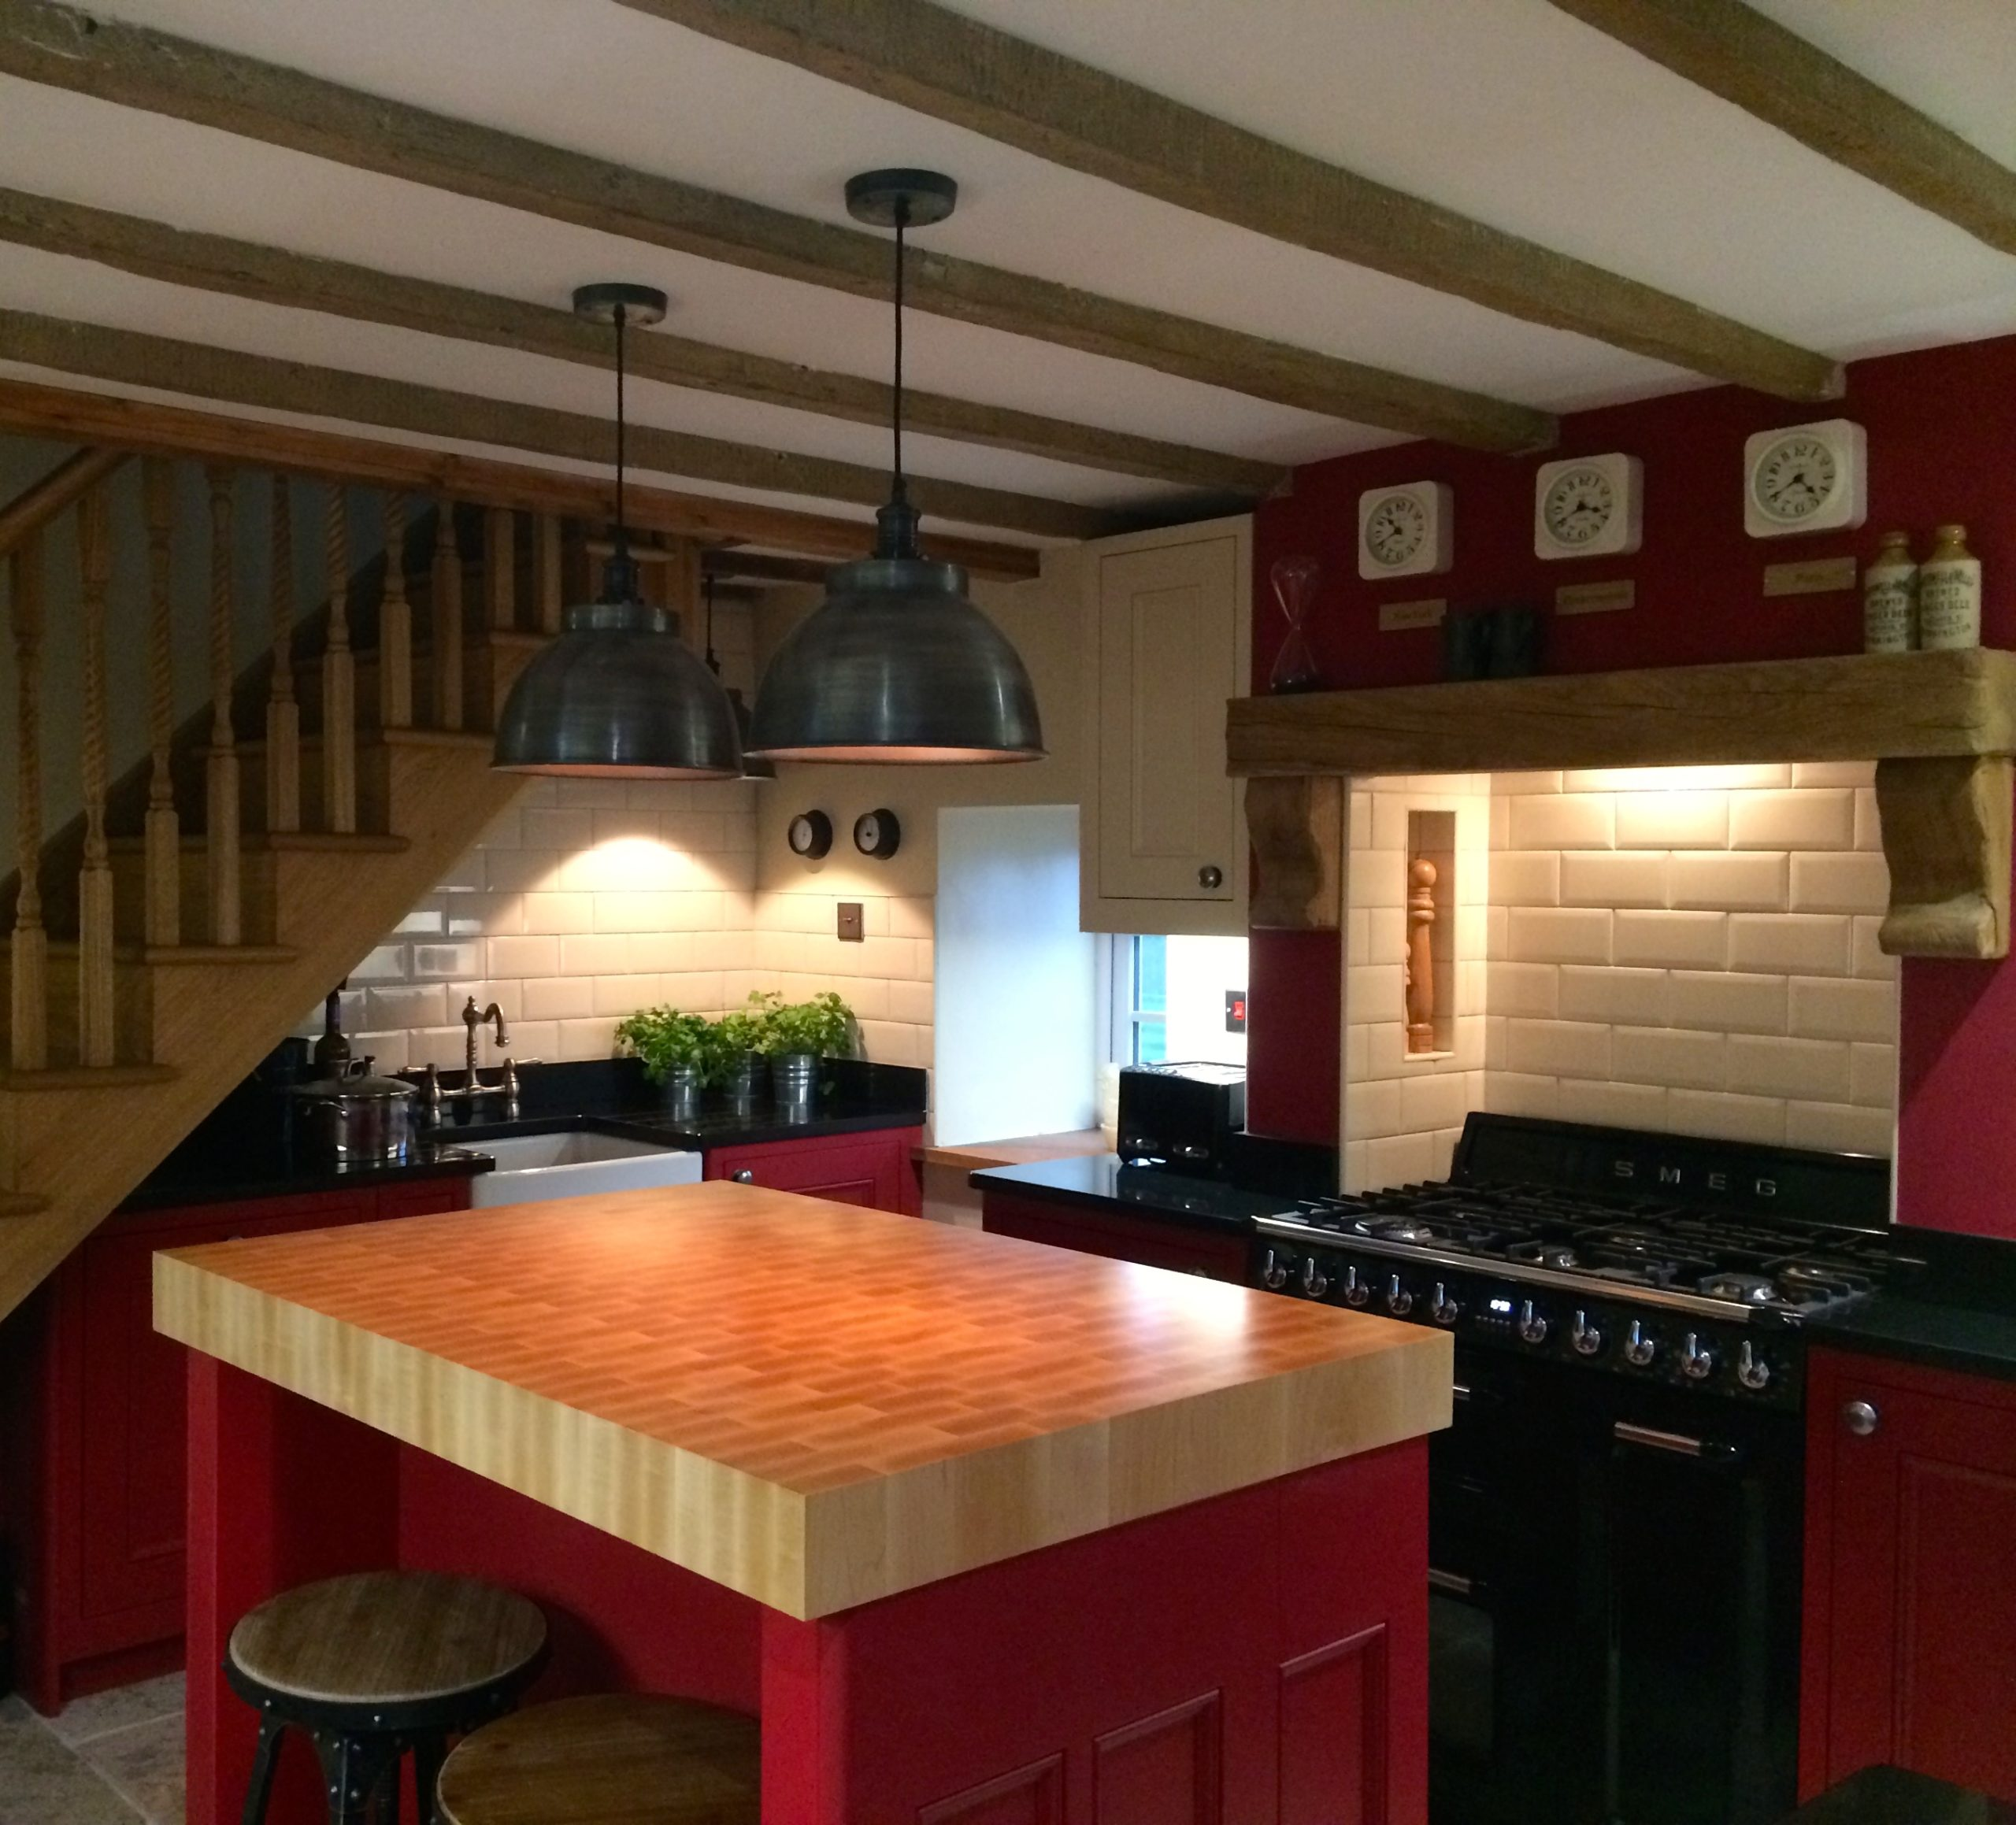 Striking inframe shaker kitchen in Farrow & Ball Rectory Red and Ringwold Ground by Amelia Wilson Interiors Interior Designer